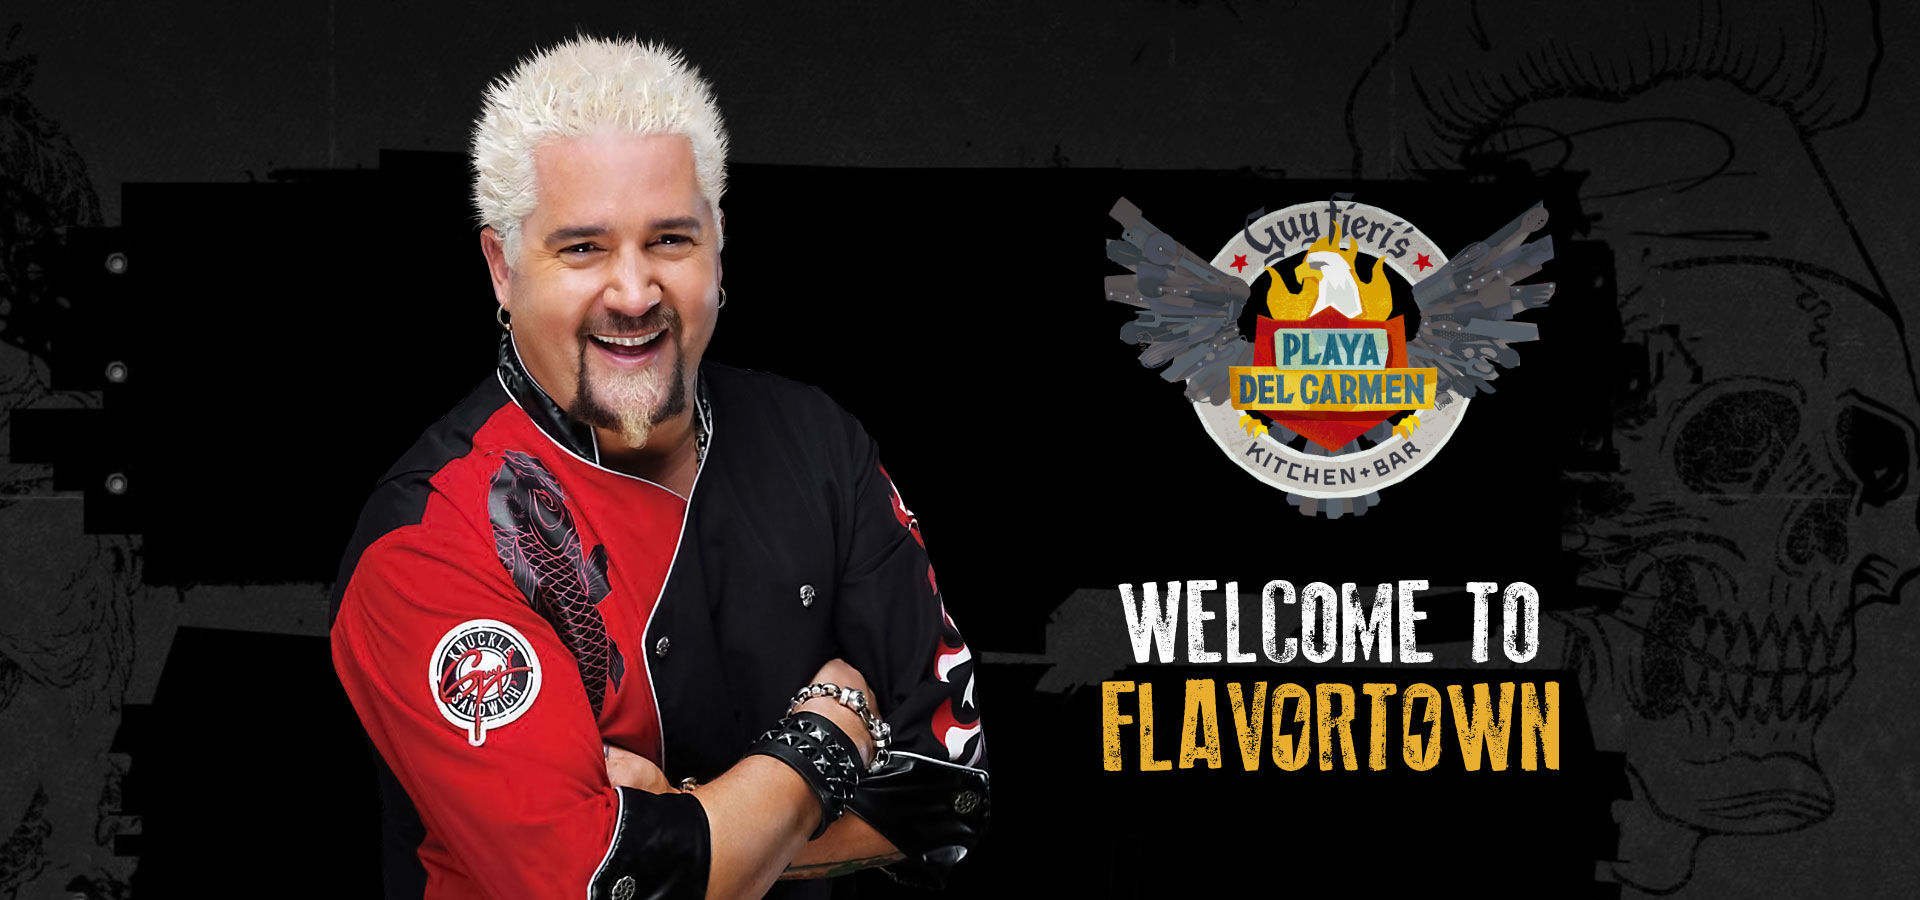 Permalink to: Welcome to Flavortown